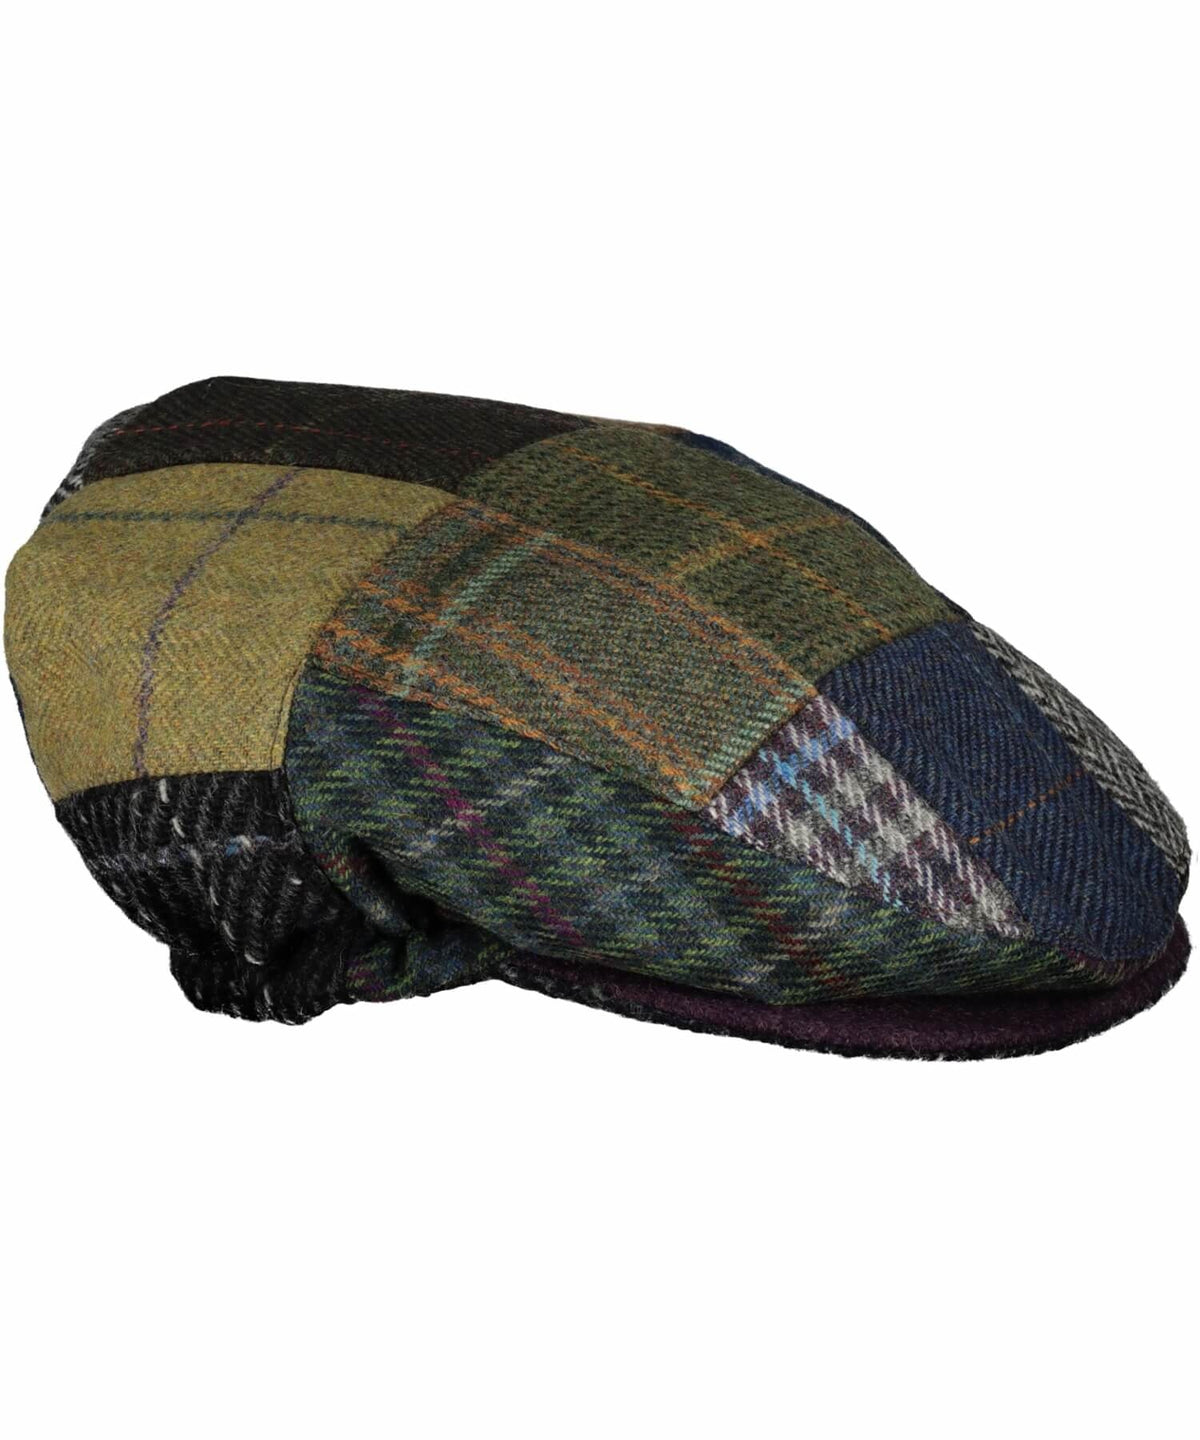 Kids Patchwork Cap - [John Hanly] - Childrens Hats, Scarves & Gloves - Irish Gifts